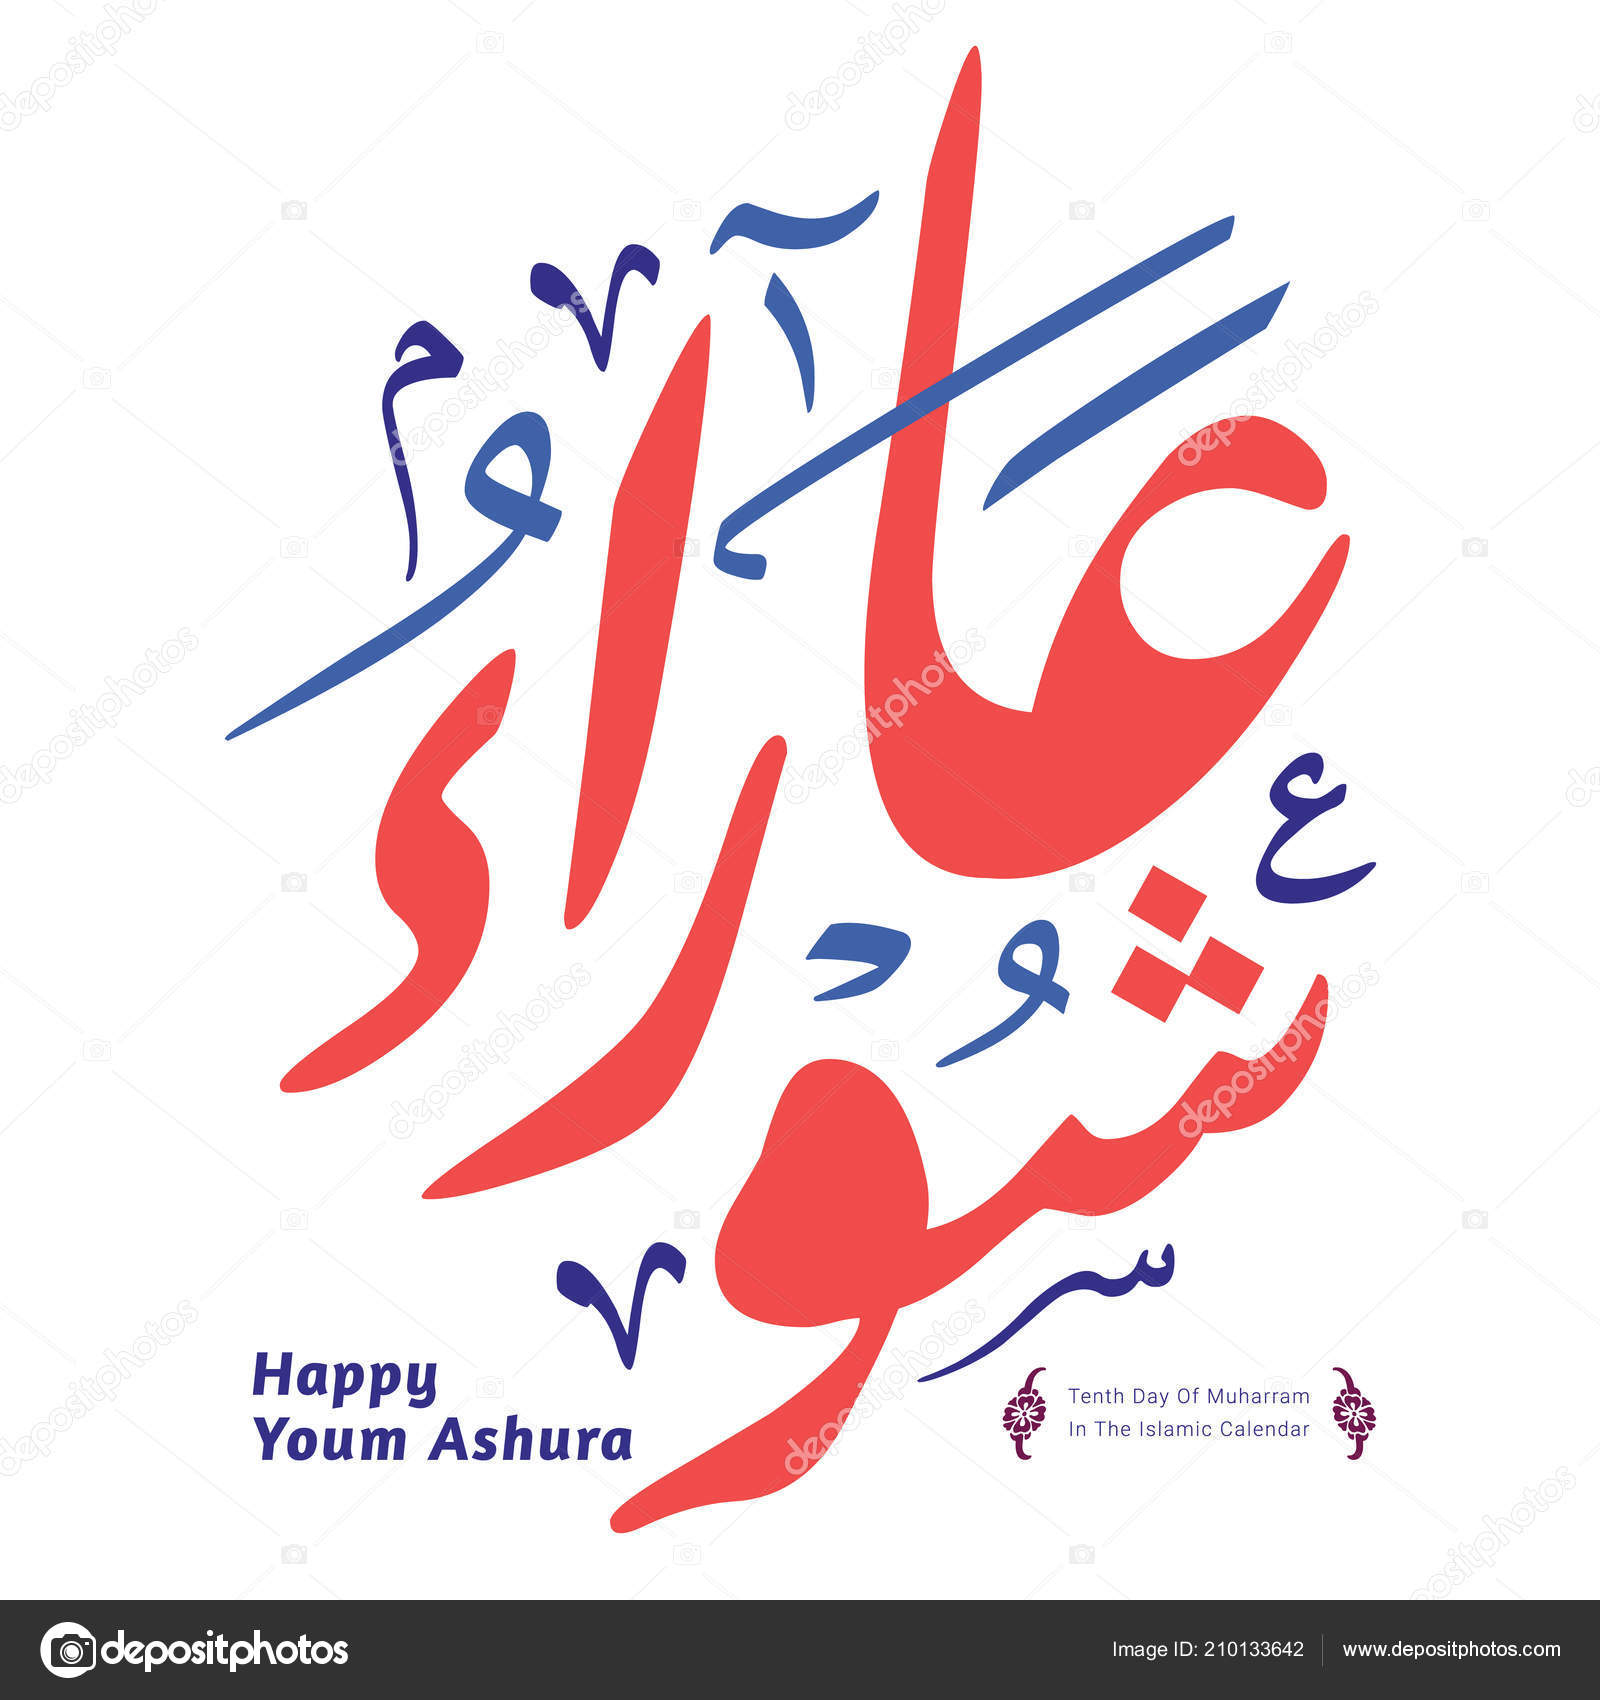 Youm ashura arabic calligraphy translation ashura tenth day.